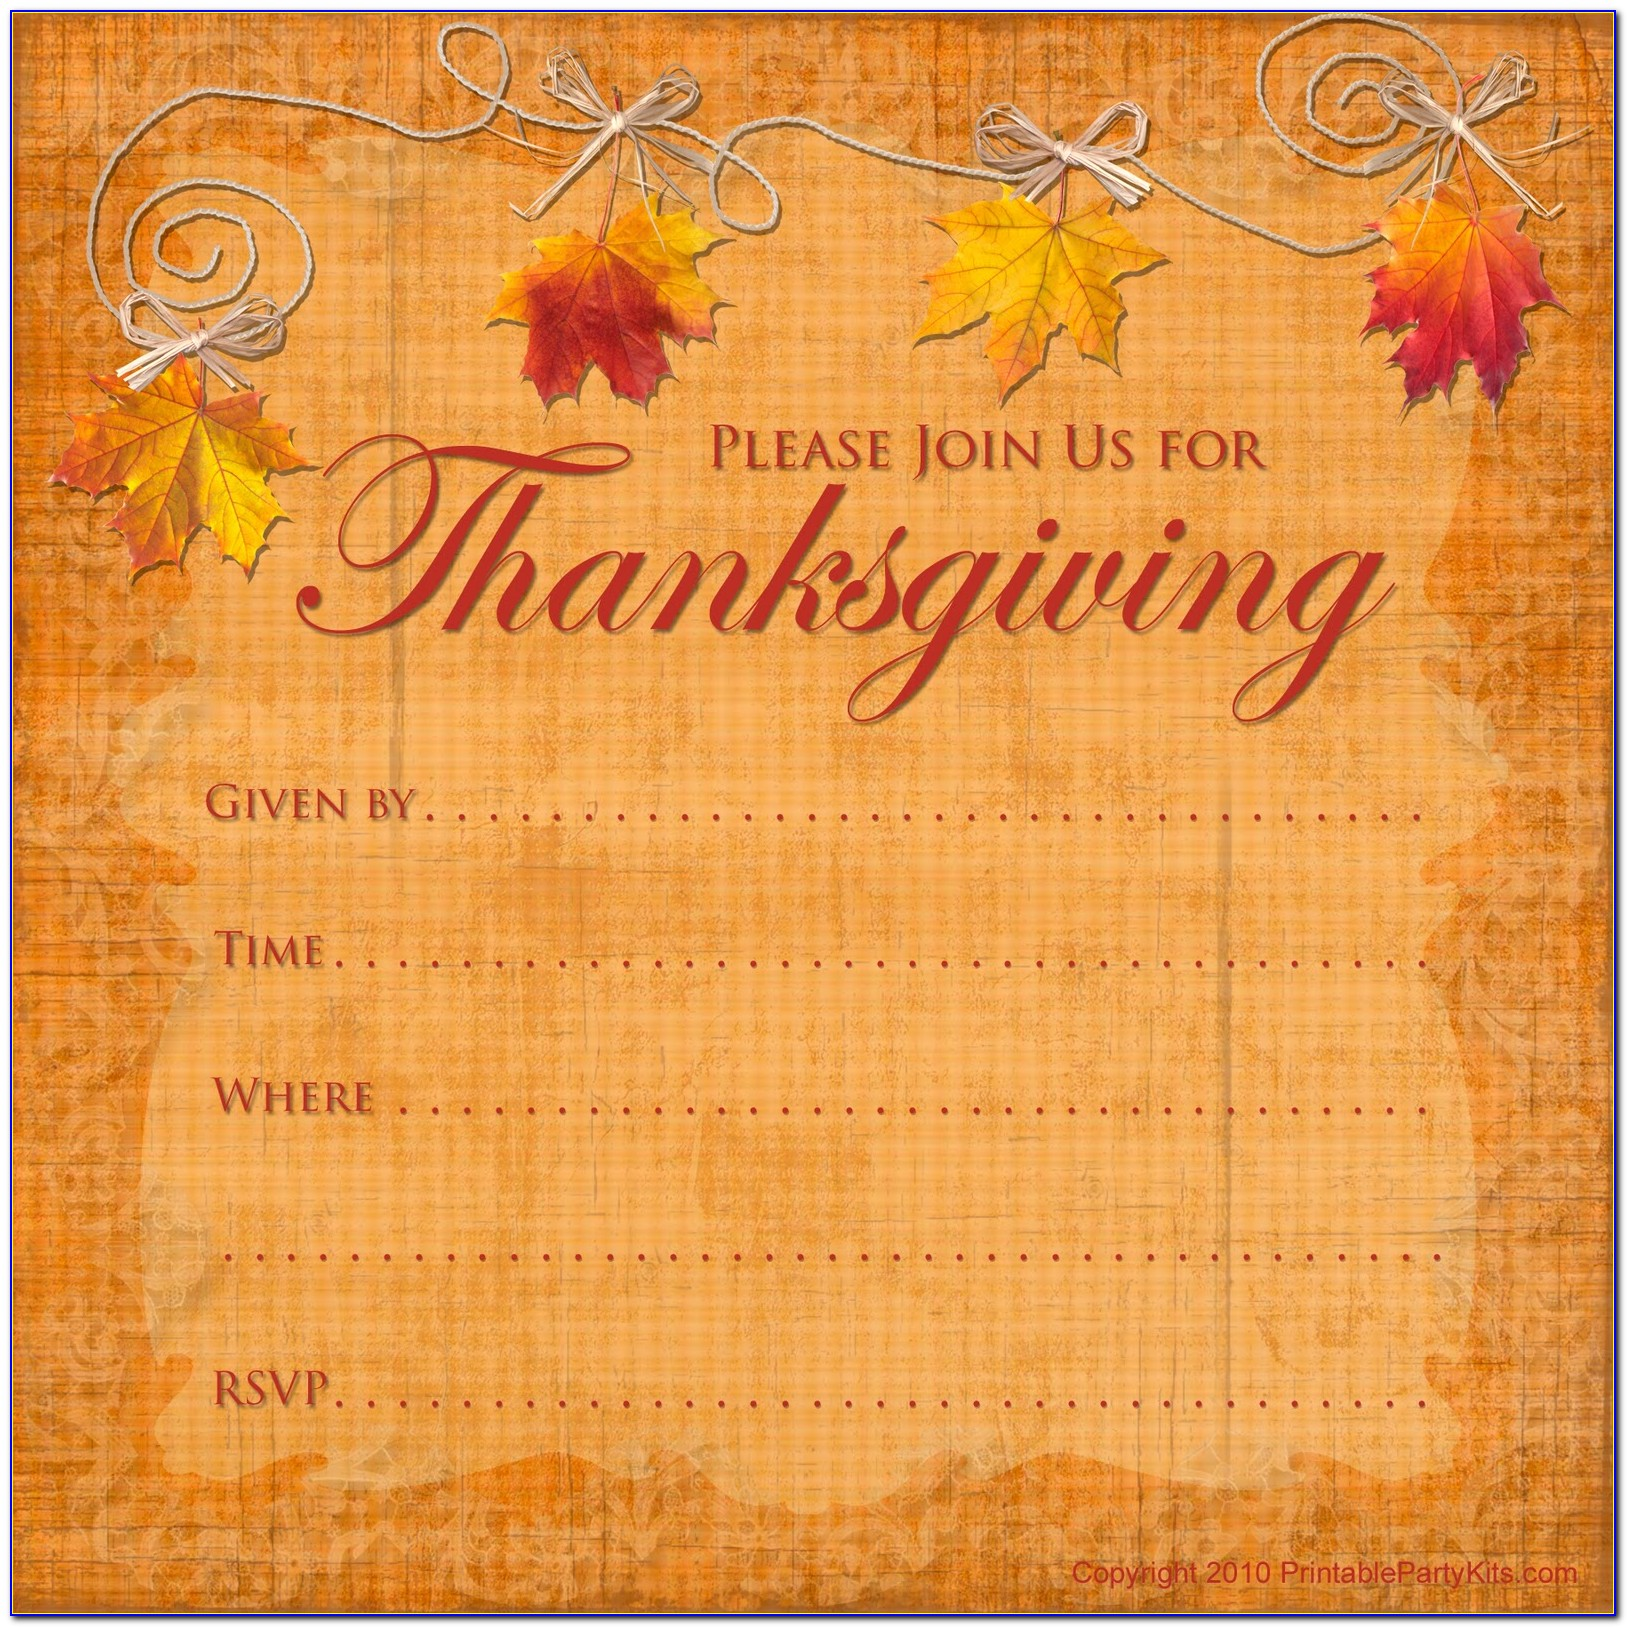 Thanksgiving Potluck Dinner Invitation Wording